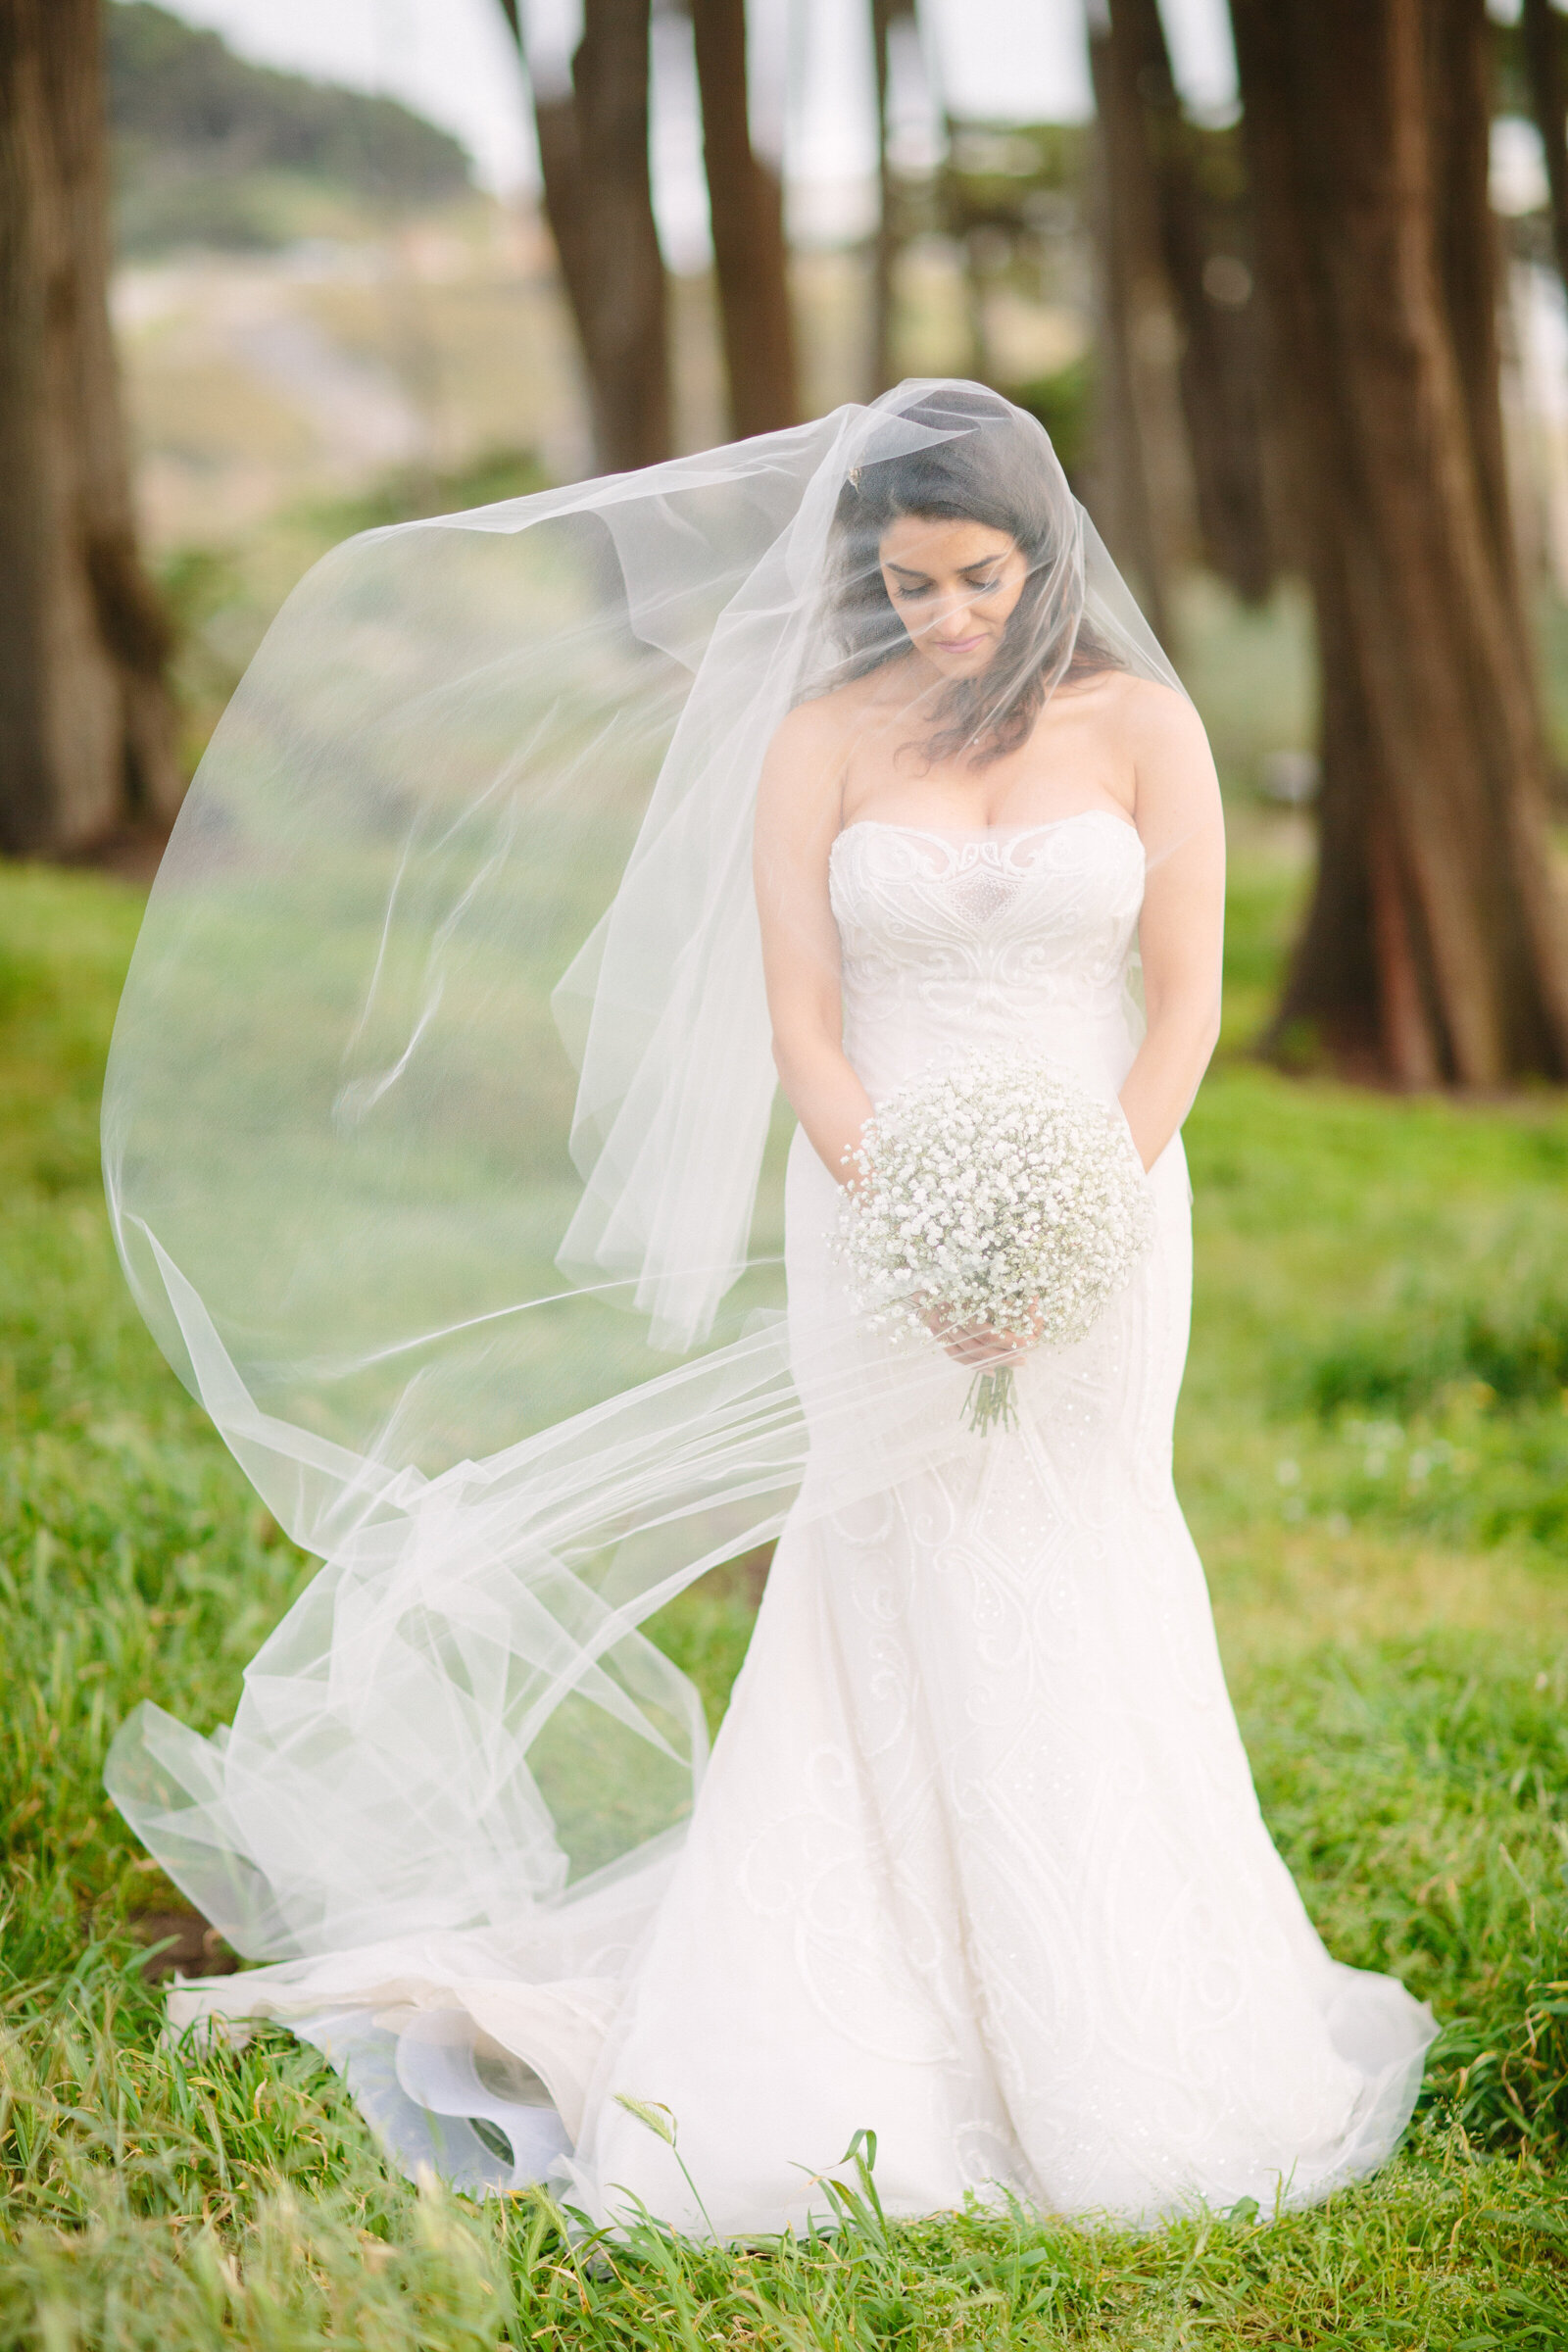 larissa-cleveland-elope-eleopement-intimate-wedding-photographer-san-francisco-napa-carmel-063